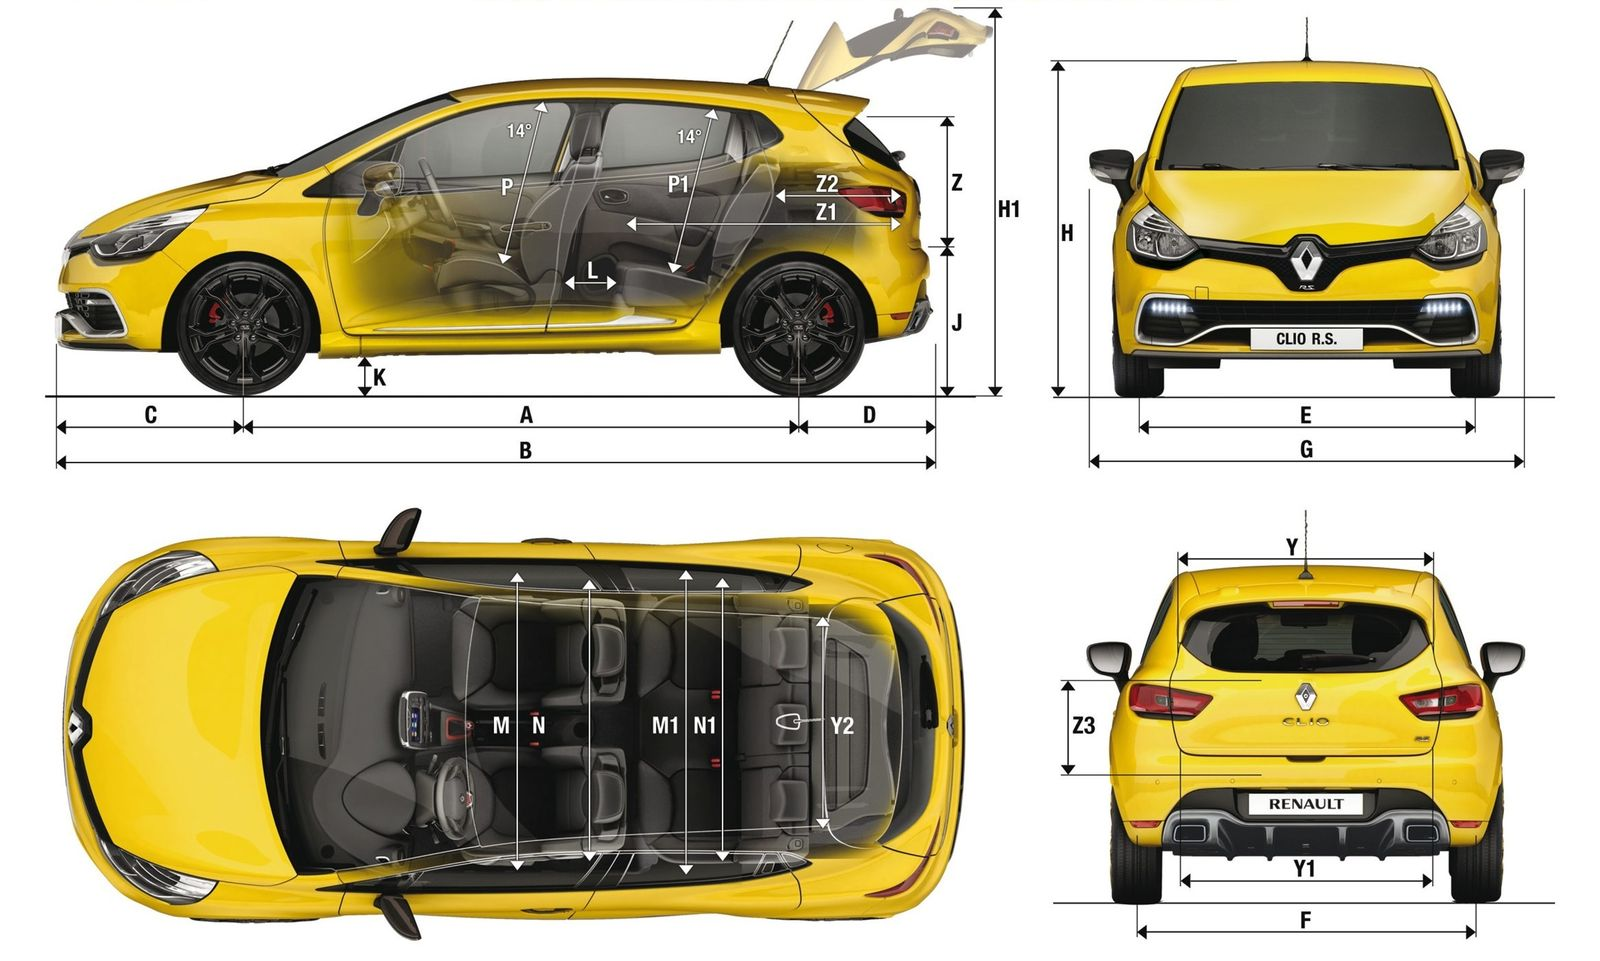 dimension clio 4 clio iv dimensions the automobilist du nouveau chez renault la clio gagne du. Black Bedroom Furniture Sets. Home Design Ideas